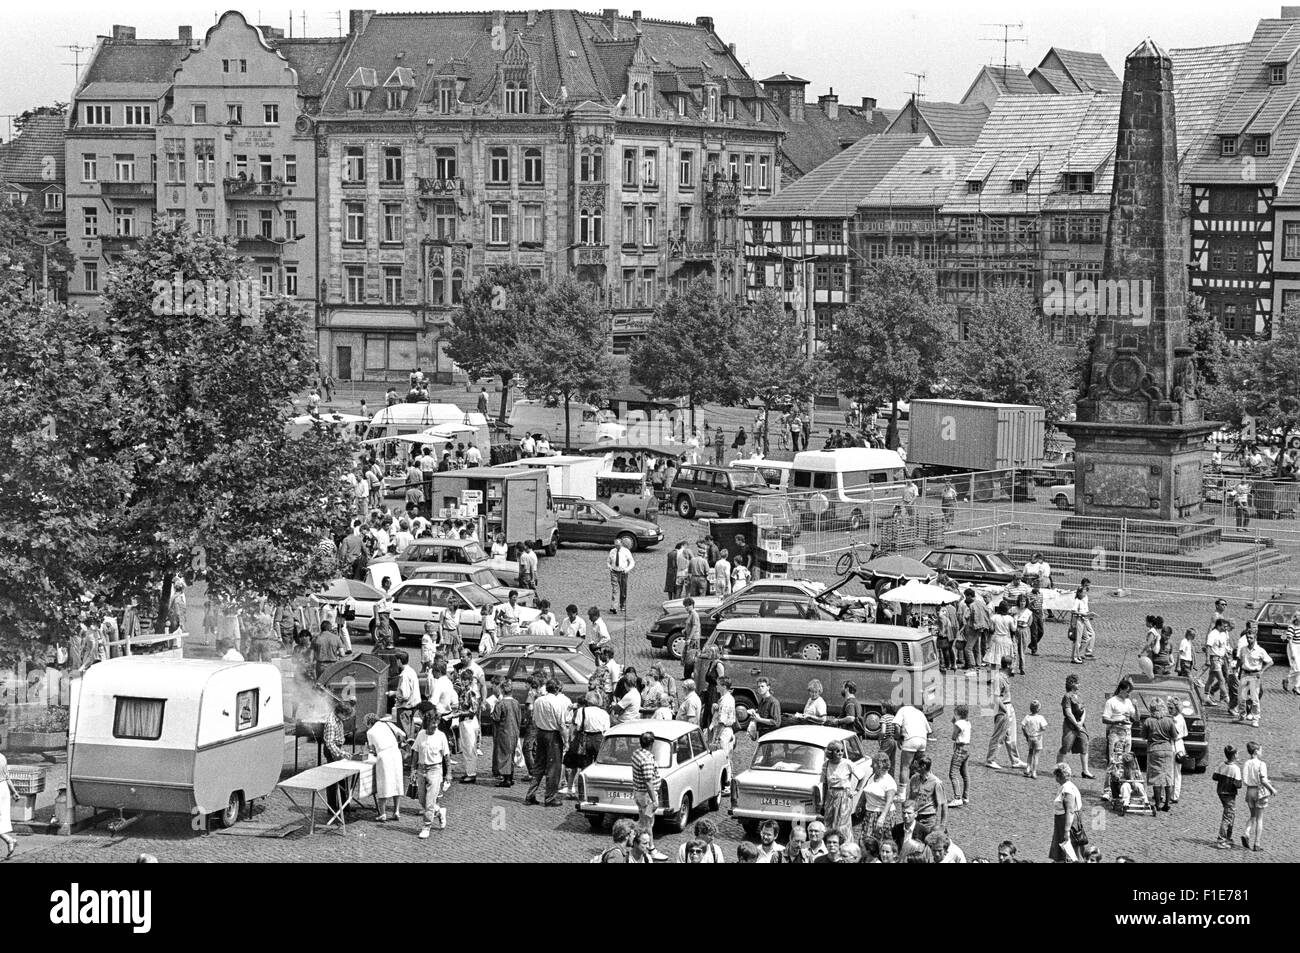 Introduction of the D-Mark in East Germany after reunification, on 01.07.1990, Used car Market - Stock Image